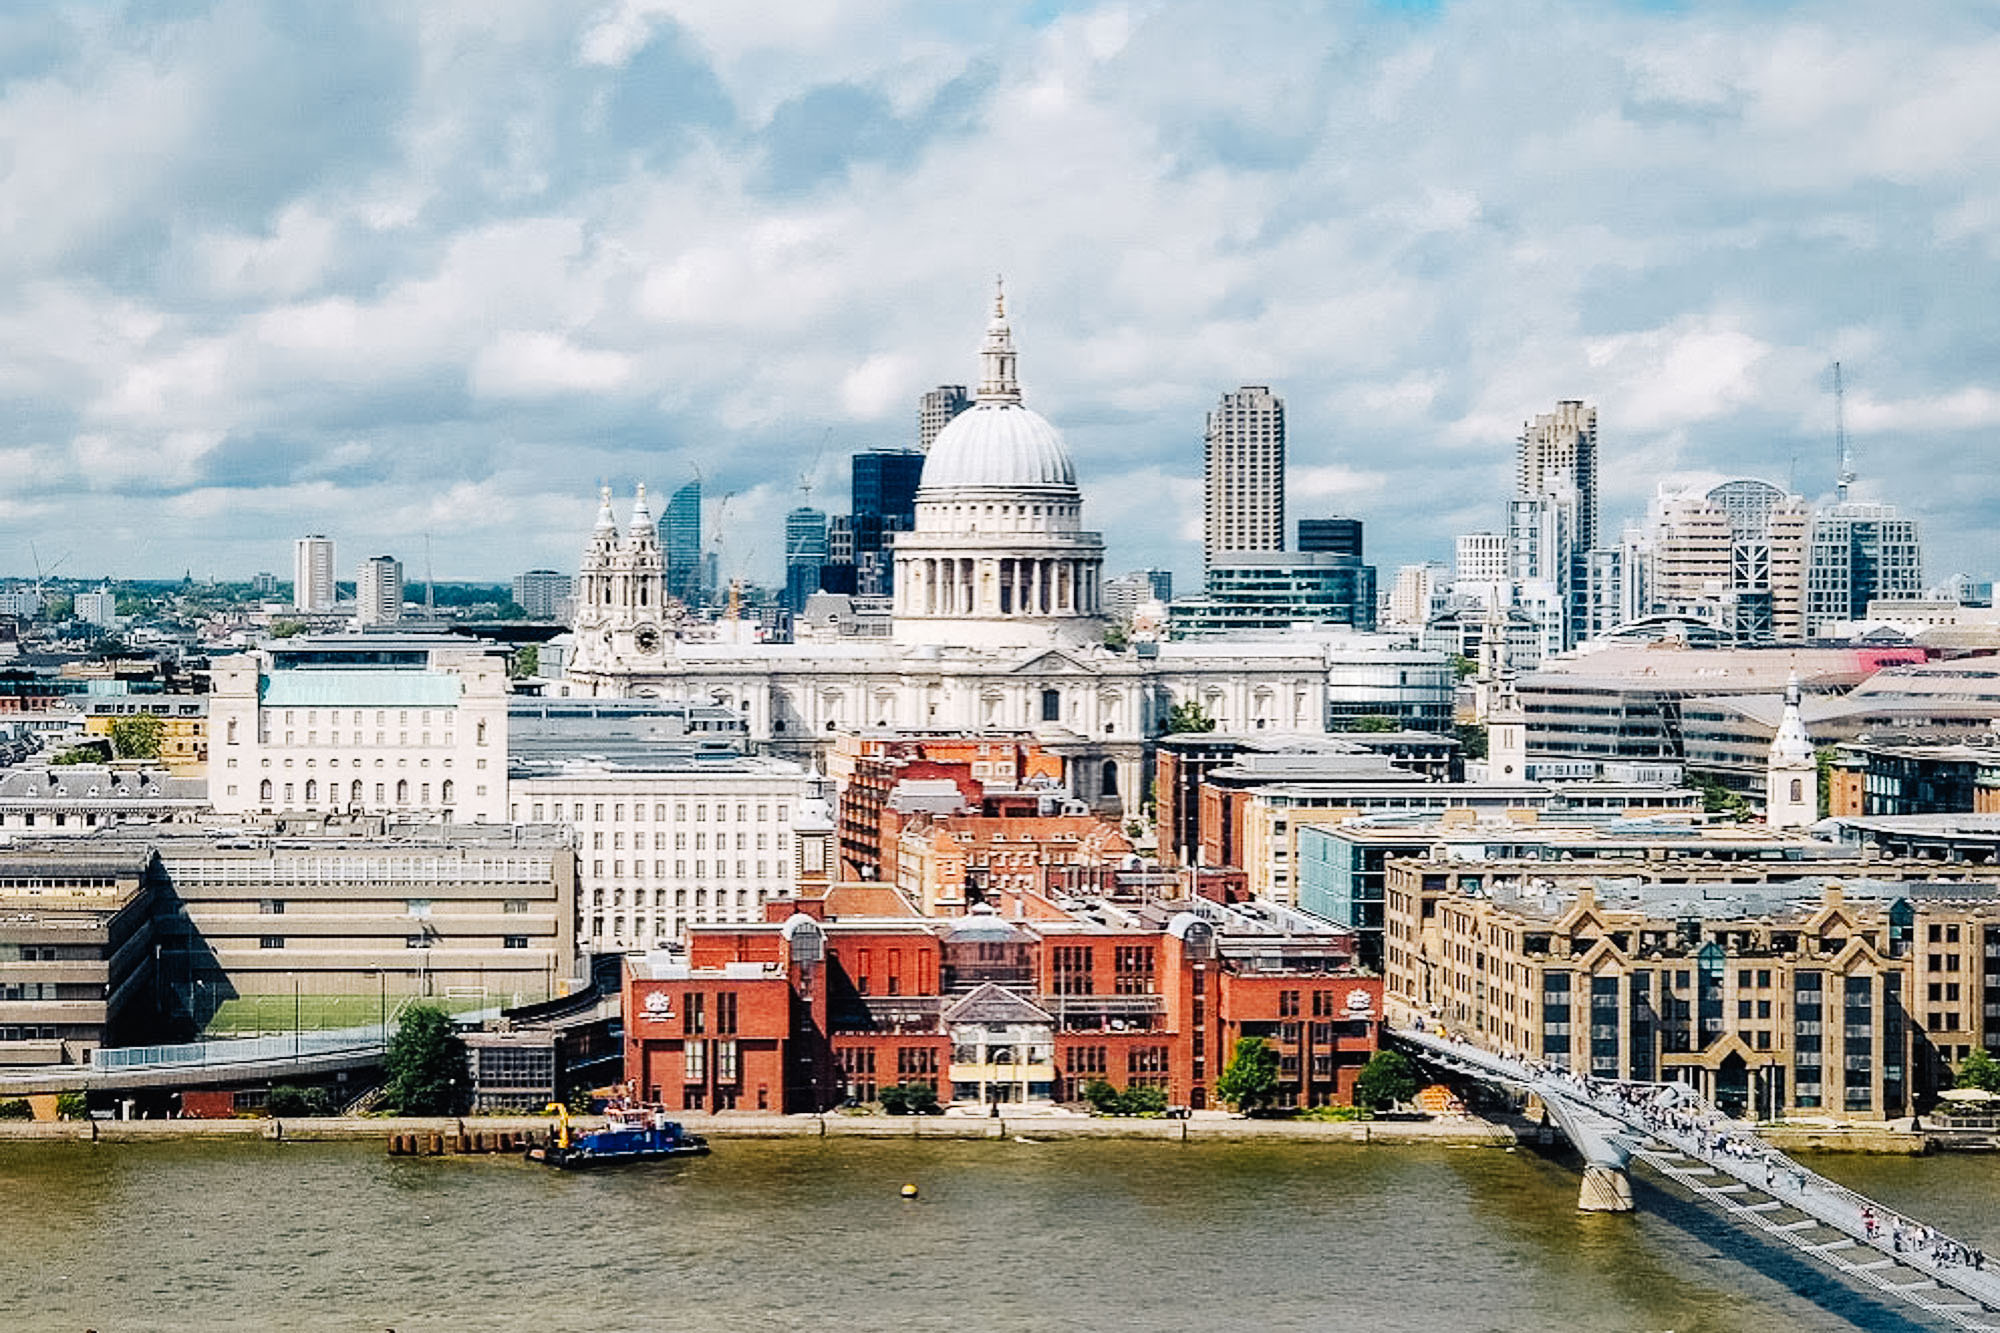 View of St Paul's Cathedral from the Tate Modern in London, United Kingdom